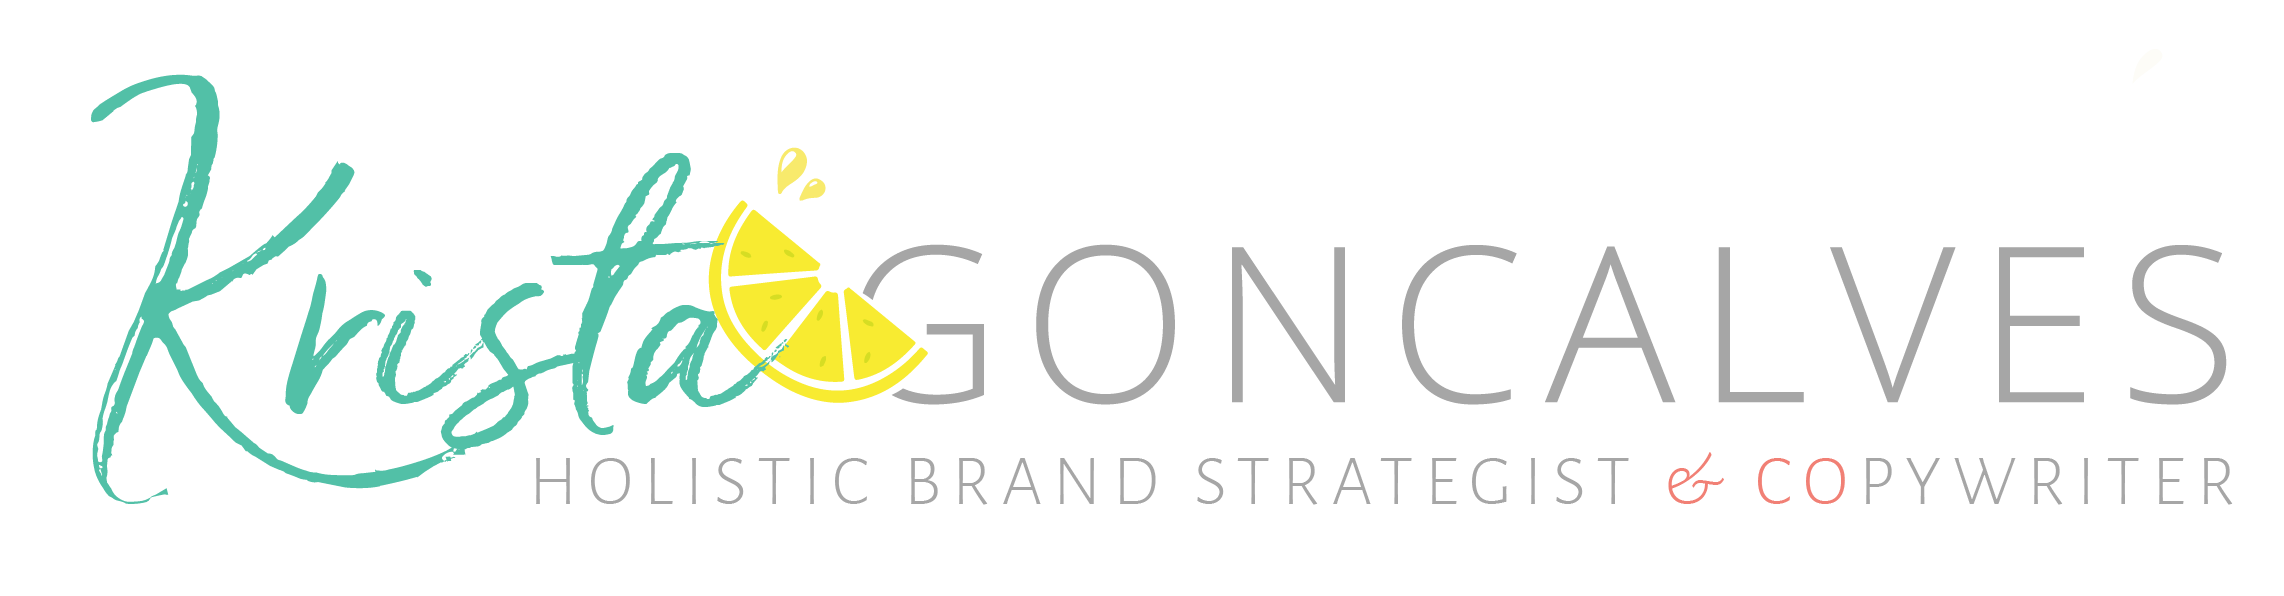 Krista Goncalves Co. | Holistic Brand Strategist & Copywriter for Wellness Entrepreneurs